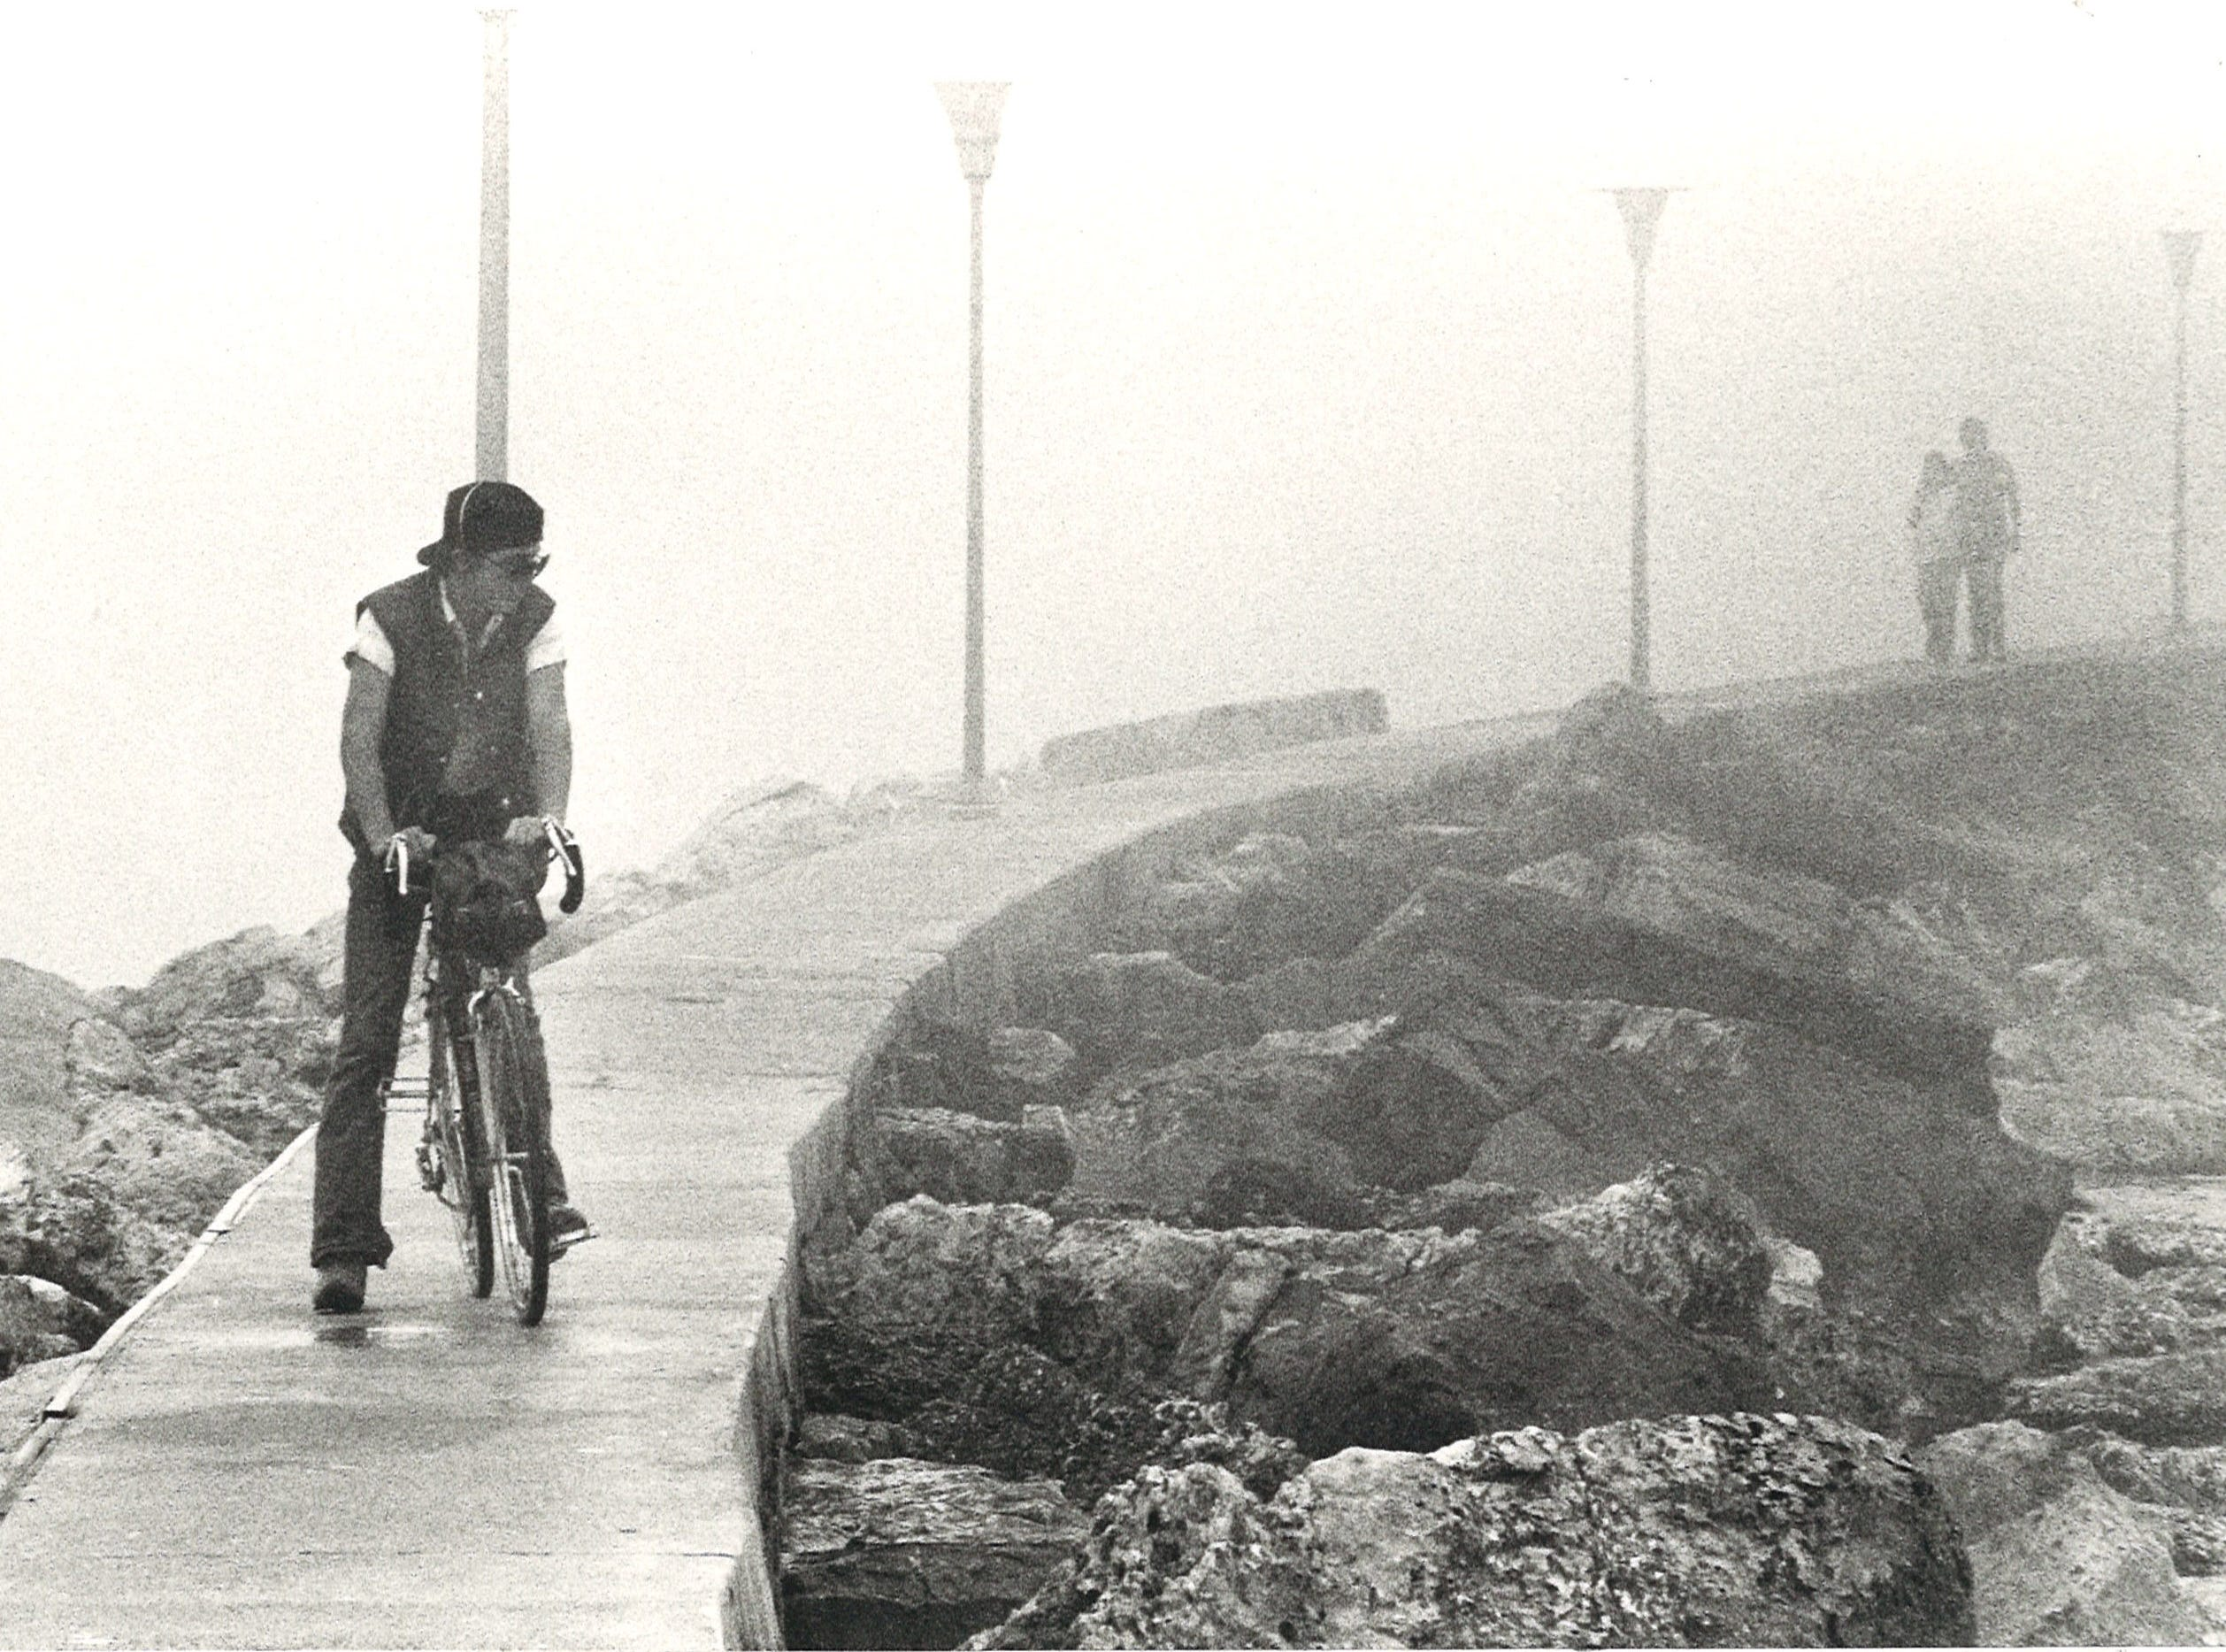 Jerry William Smith (on bike) rides along the sidewalk of the breakwater in Corpus Christi Bay on Jan. 8, 1984 as Glen and Judy Kreais stroll in the fog.